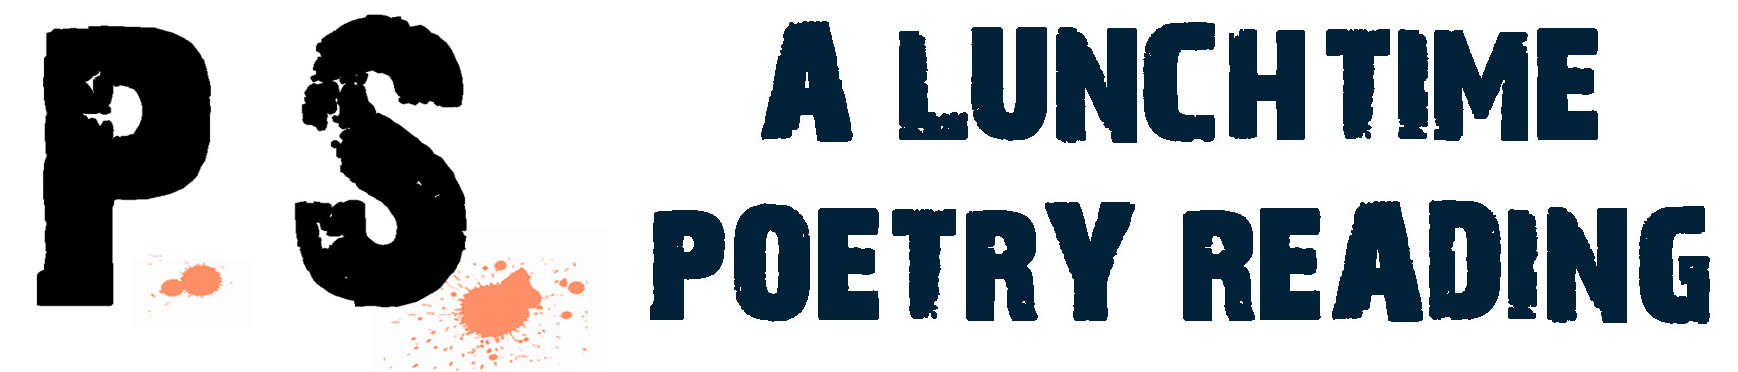 The English Department's Poetry and Poetics Interest Group Presents P.S. A Lunchtime Poetry Reading